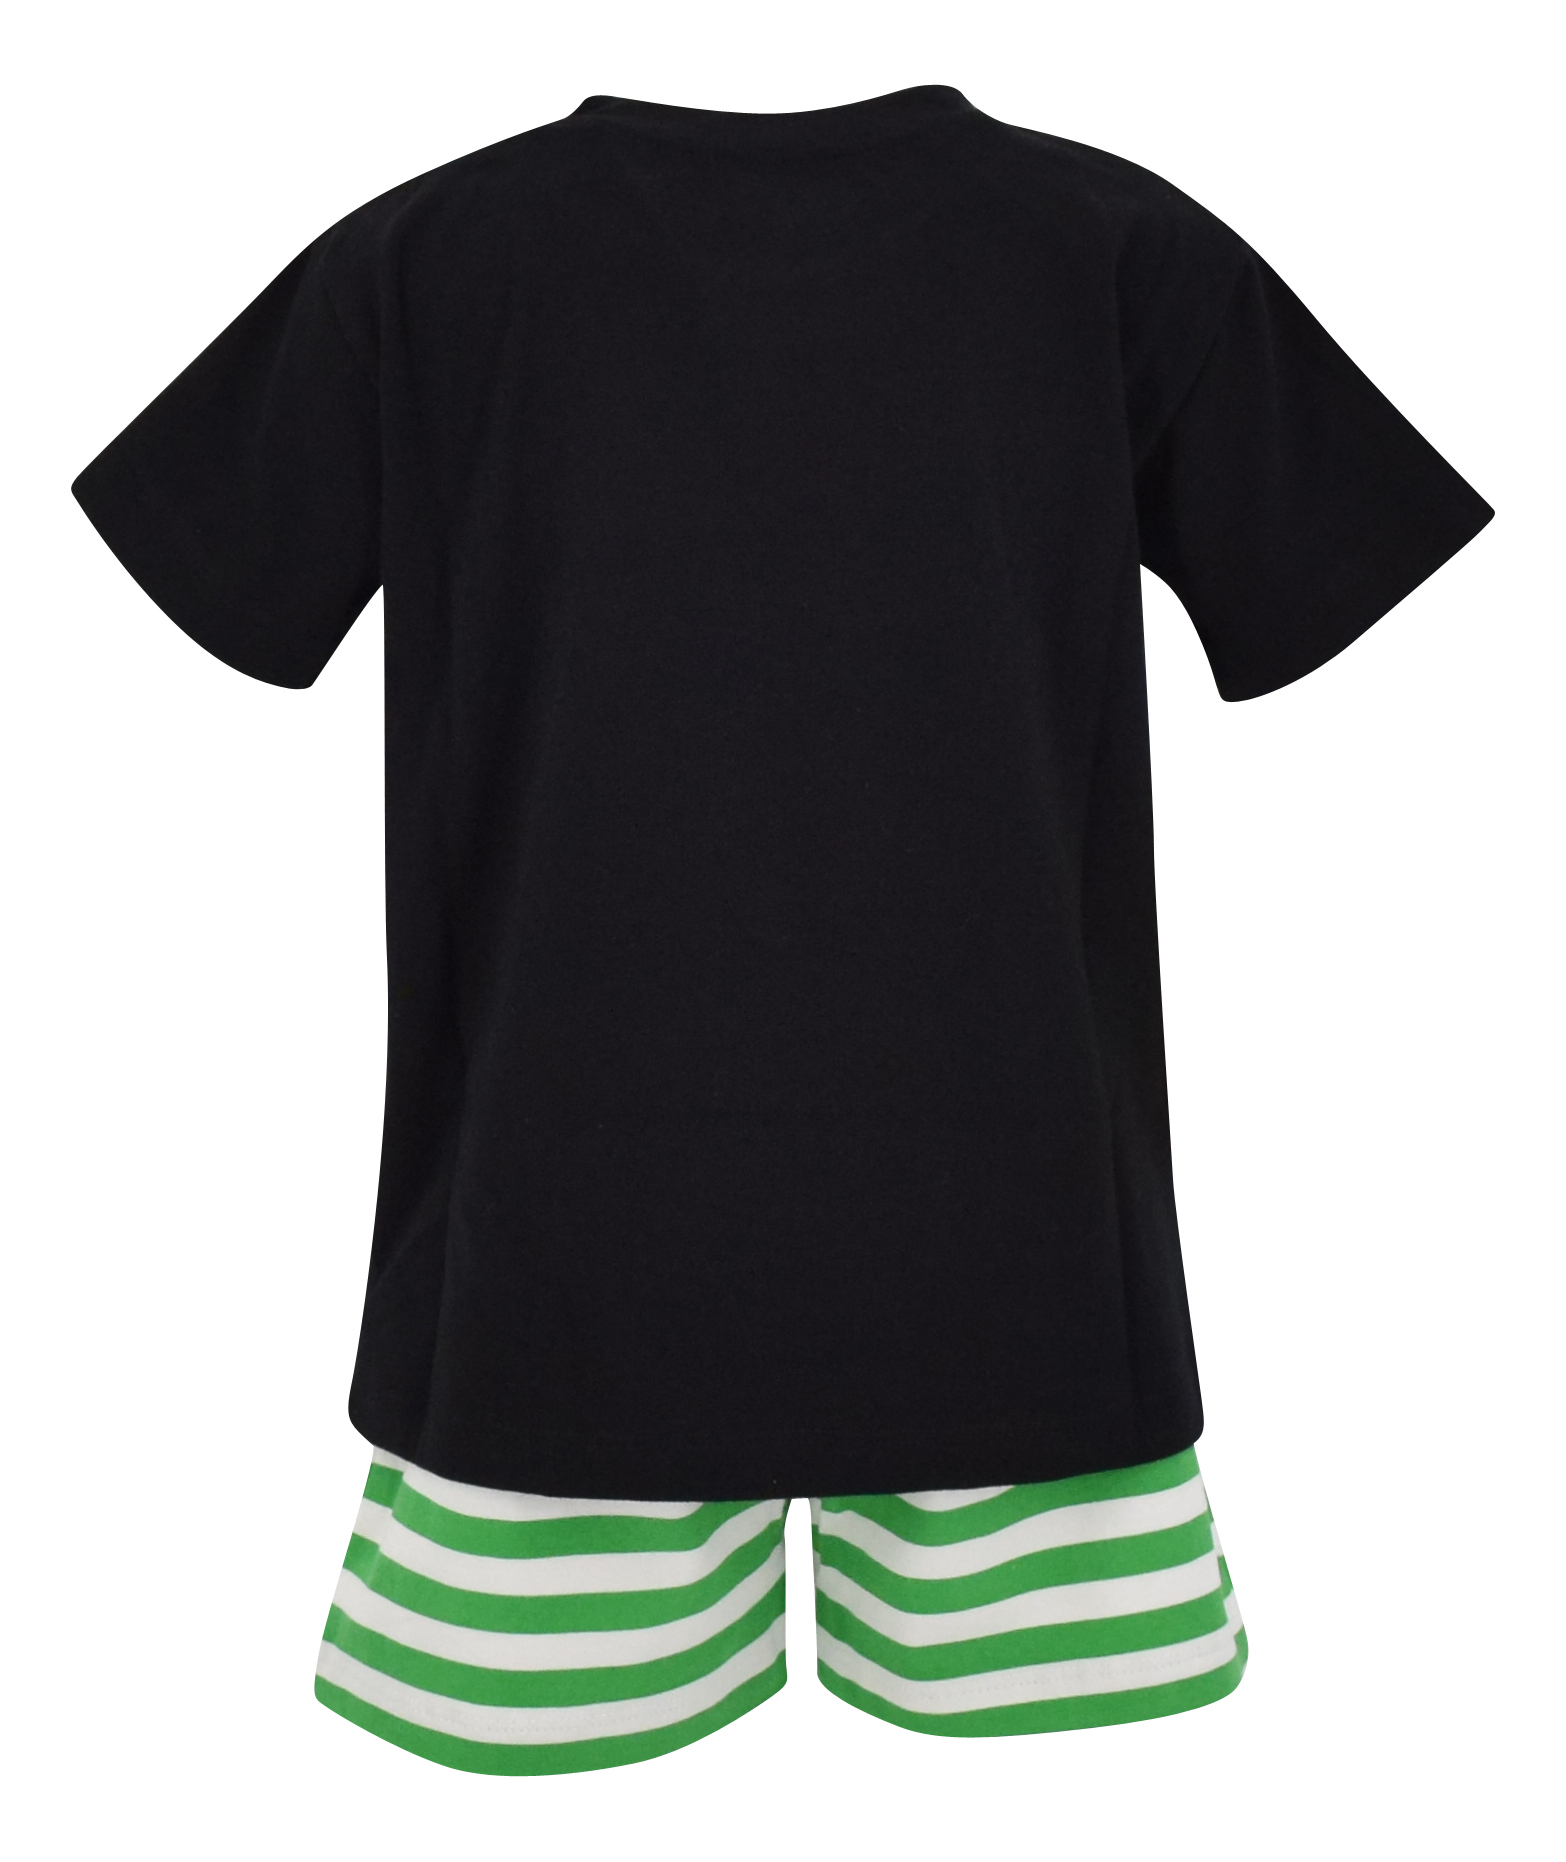 Boys-2-Piece-ST-Patricks-Day-Clover-Outfit-2t-3t-4t-5-6-7-8-Toddler-Kids-Clothes thumbnail 39